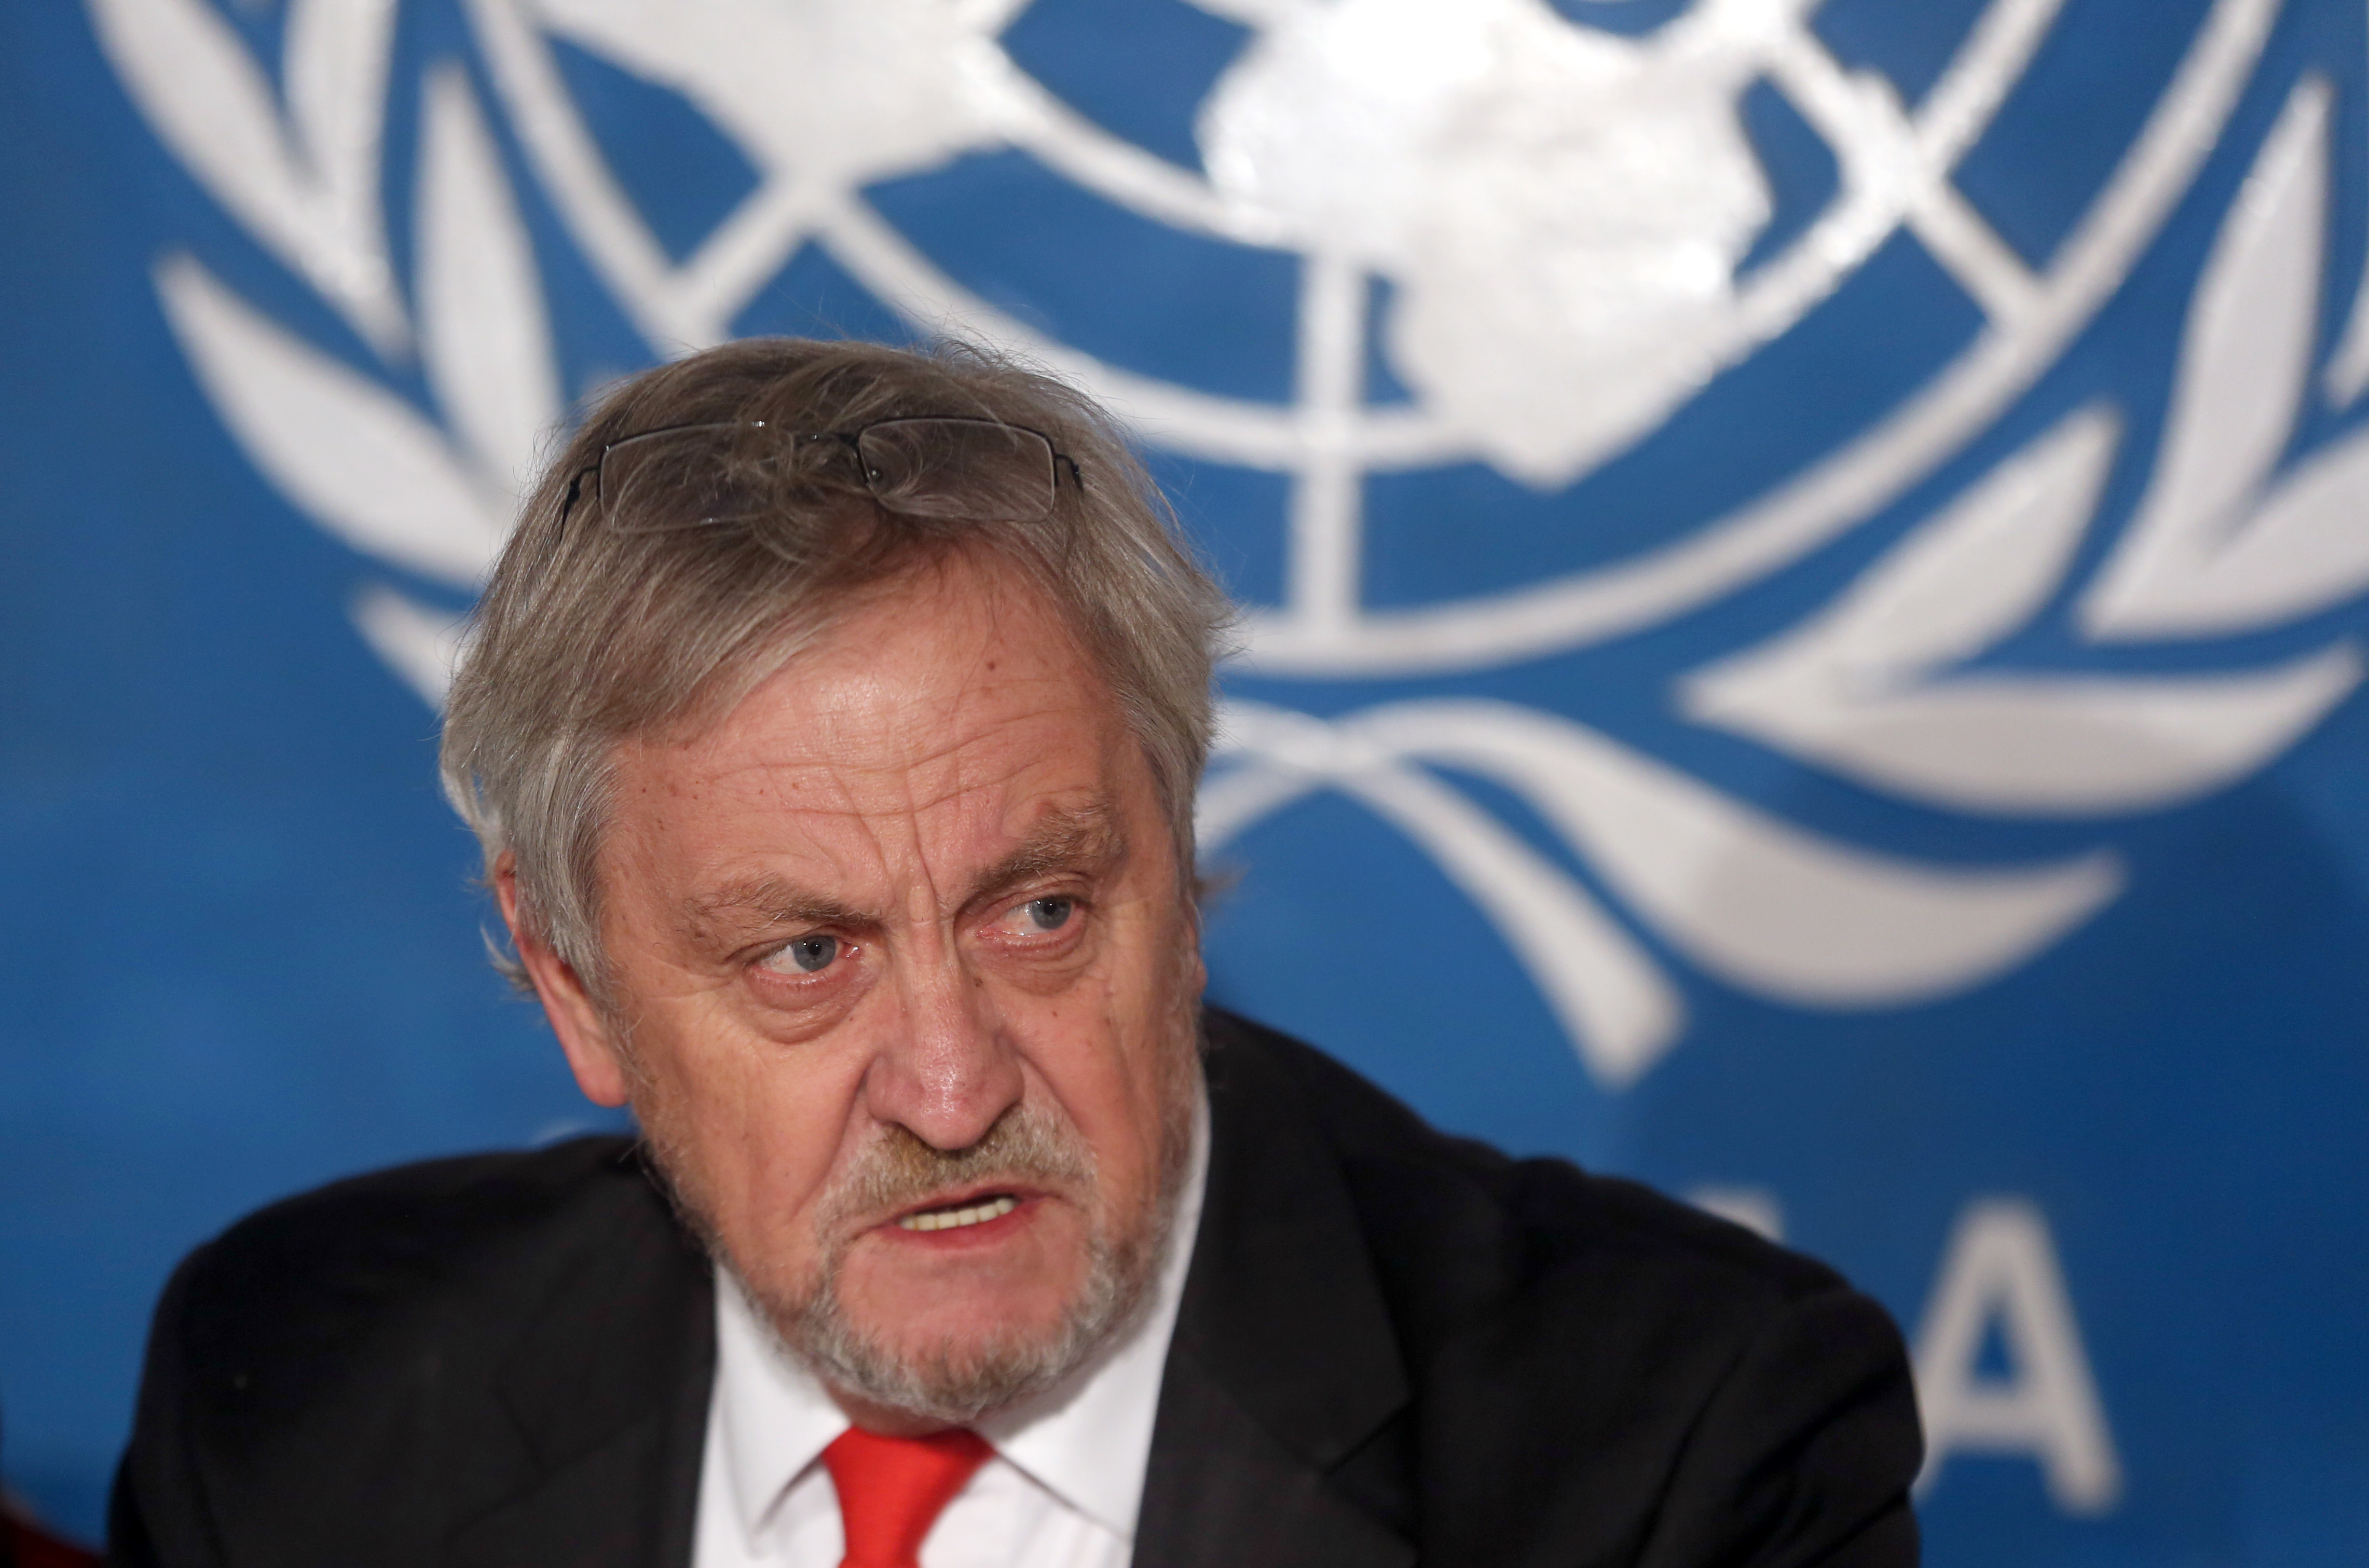 Then the top UN envoy in Afghanistan, Nicholas Haysom speaks during a press conference in Kabul, Feb. 18, 2015.